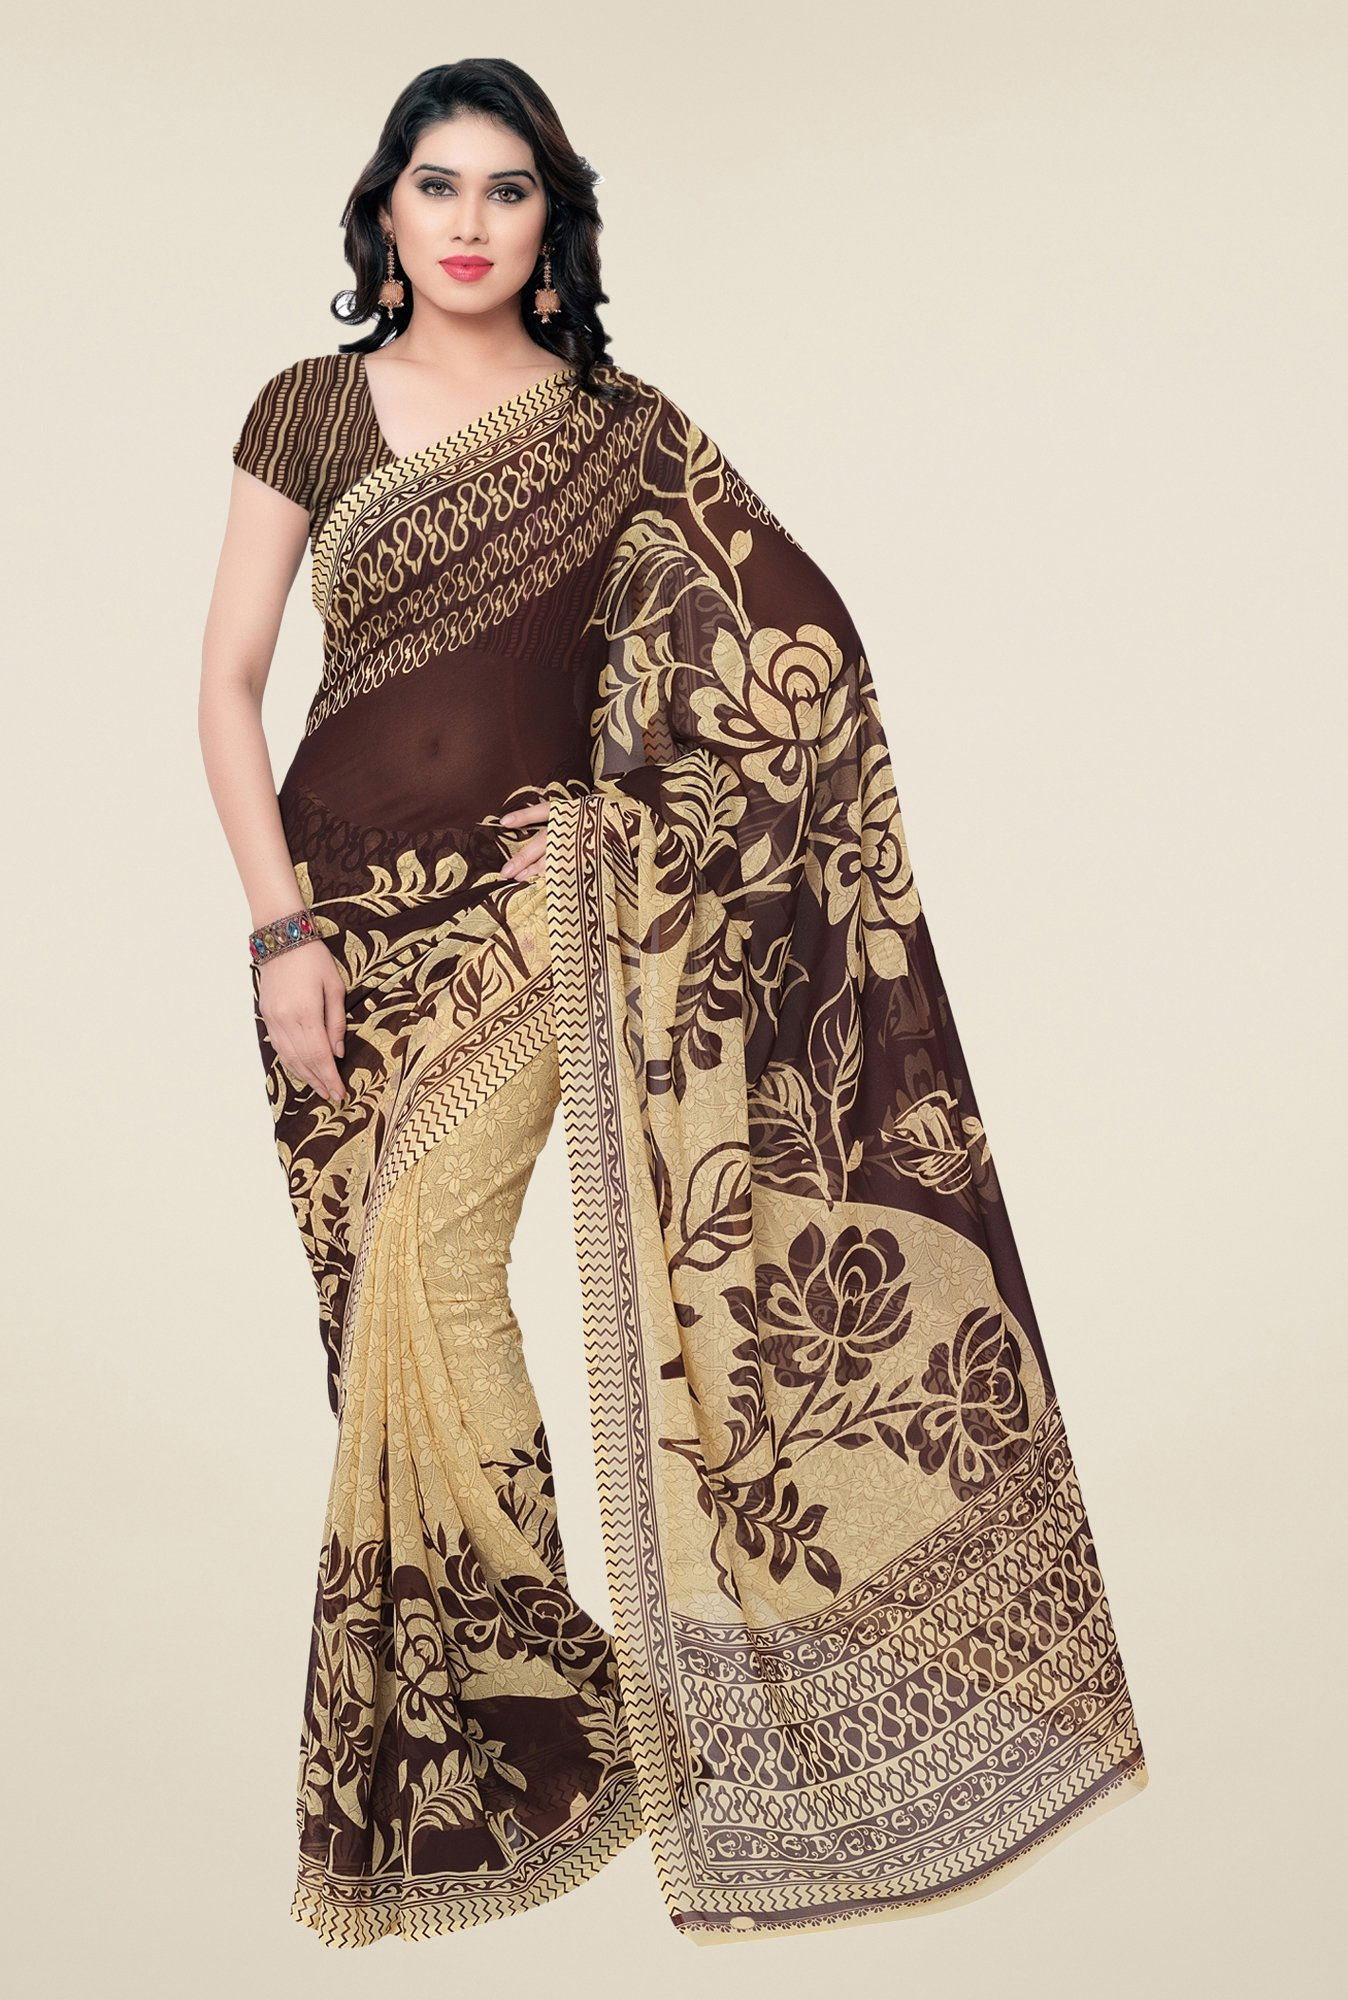 Triveni Brown & Beige Floral Faux Georgette Saree